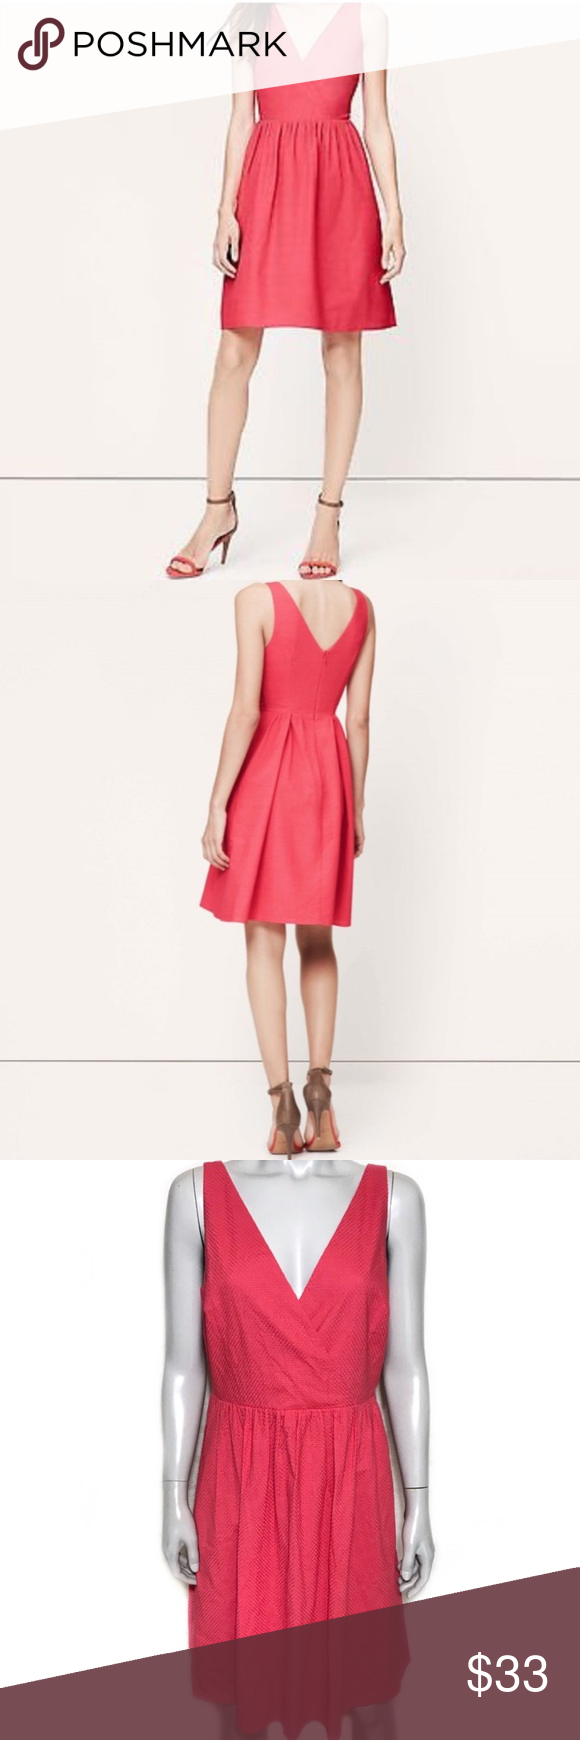 ba38c7aac7b  LOFT  cotton eyelet pocket dress Light coral red colored dress with eyelet  lace texture. Faux wrap style at the bust. Lined dress is pleated at the  skirt.